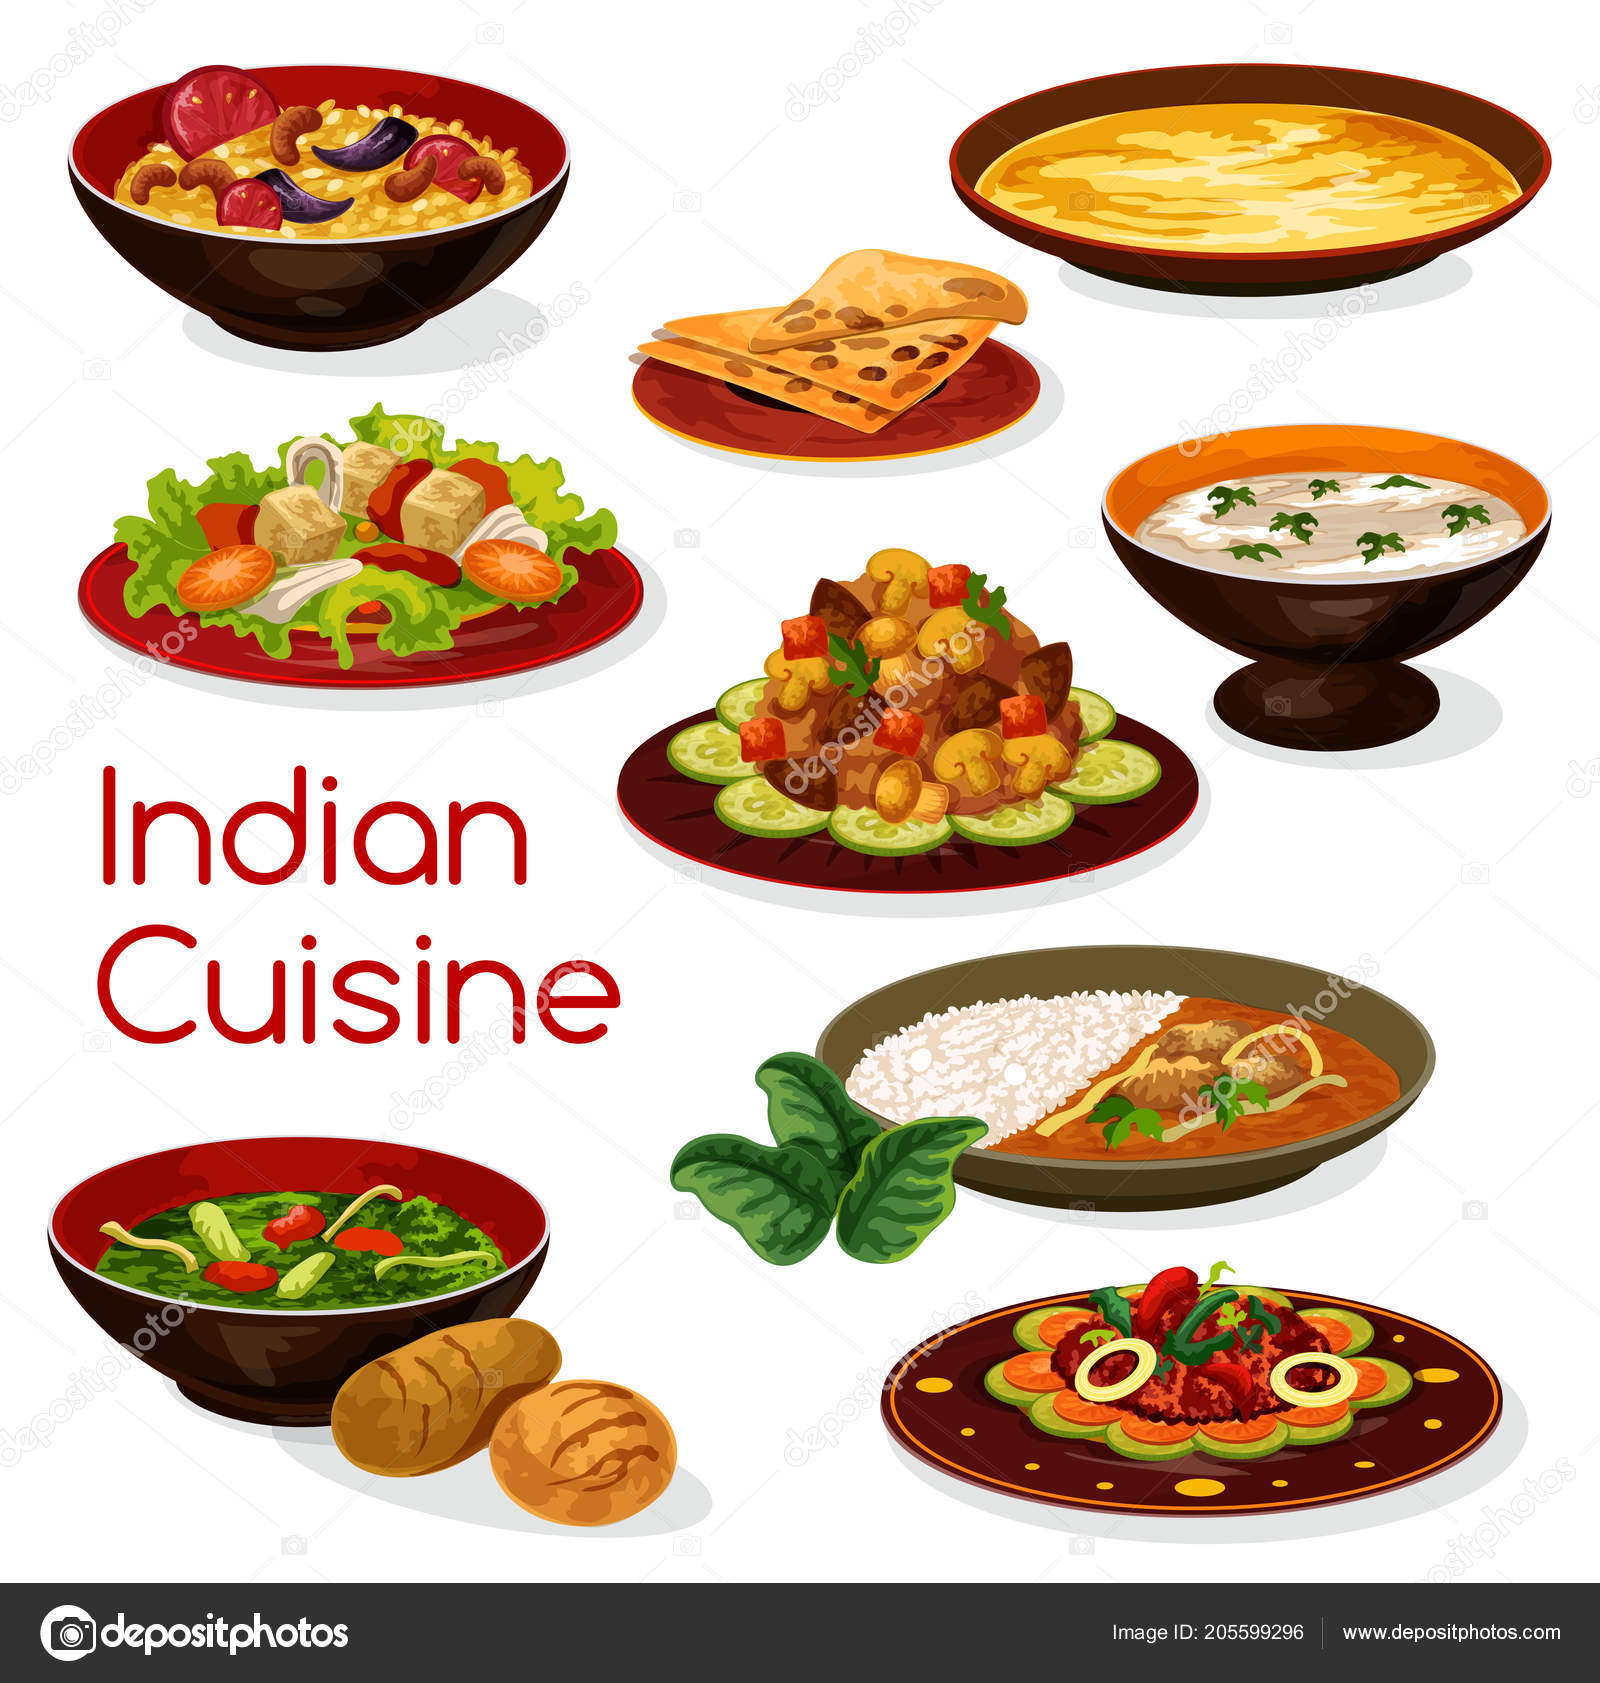 Cuisines Similar To Indian Indian Cuisine Meal Icons And Dishes Stock Vector Seamartini